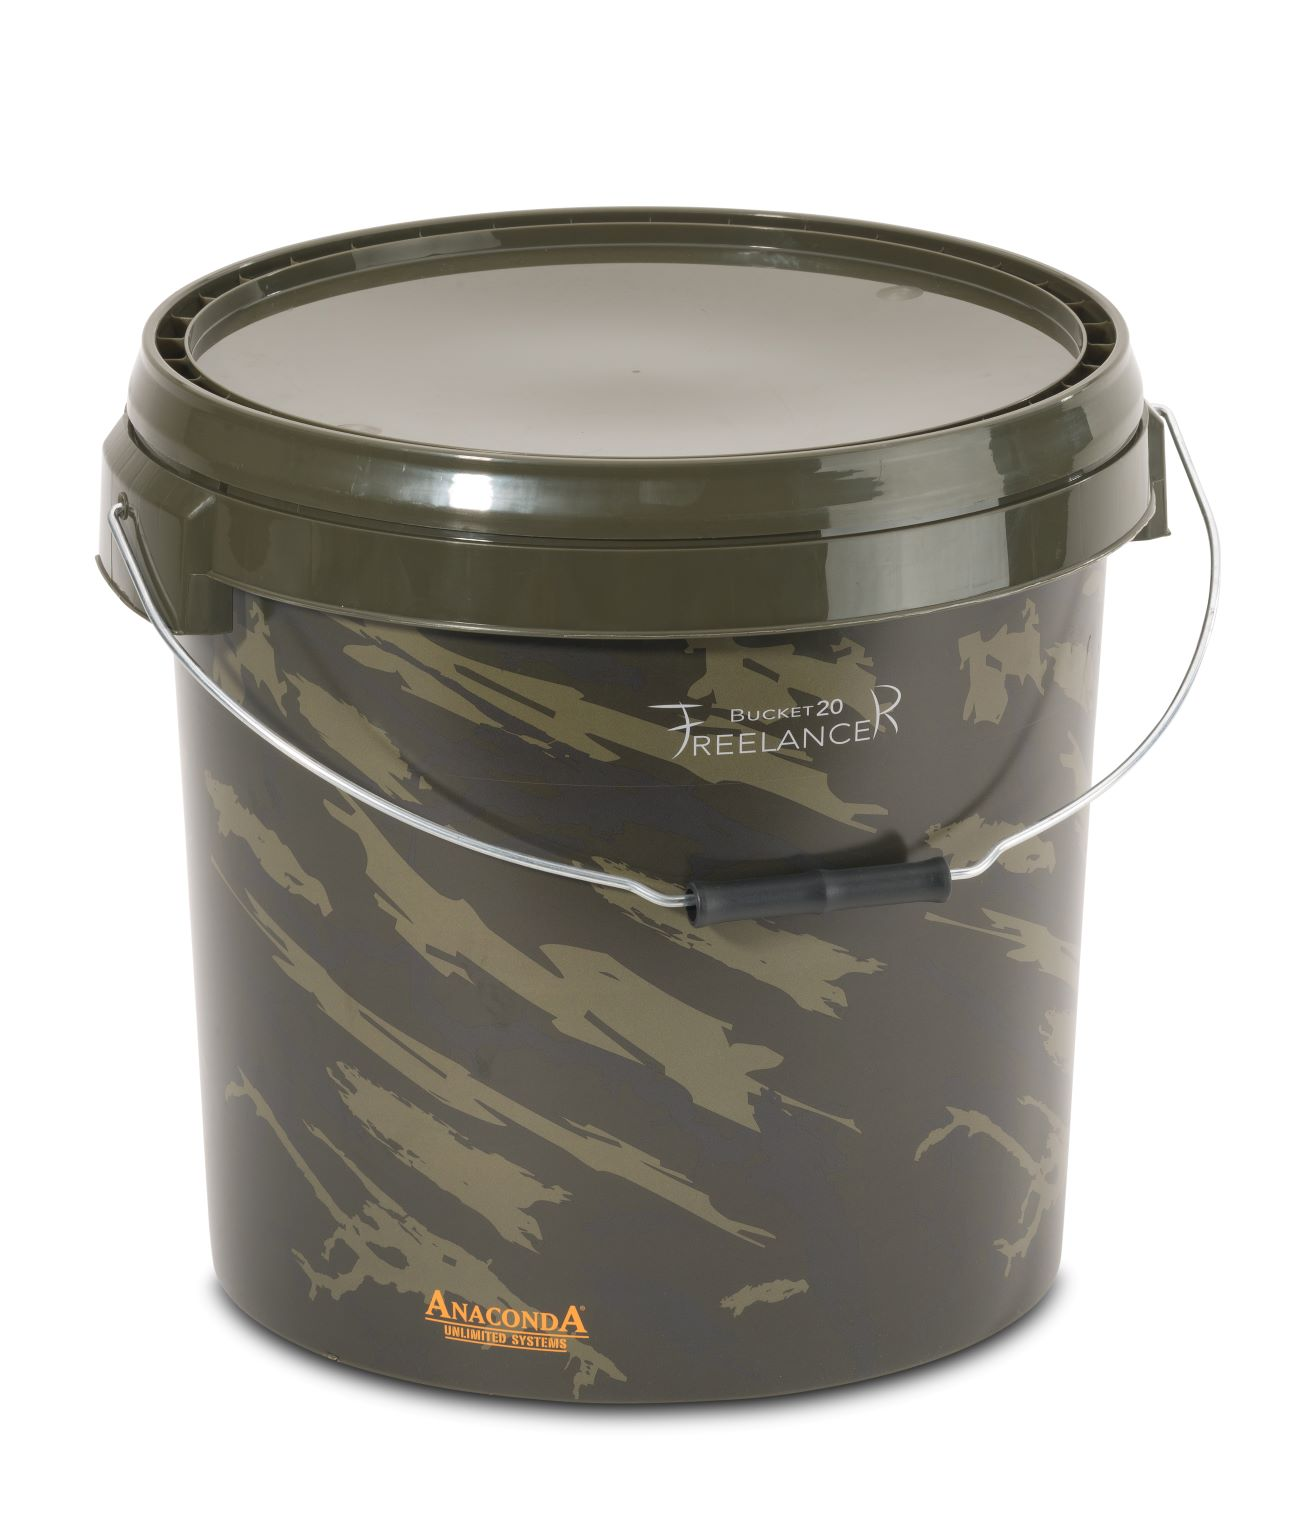 Anaconda kbelík Freelancer Bucket, 20 litrů